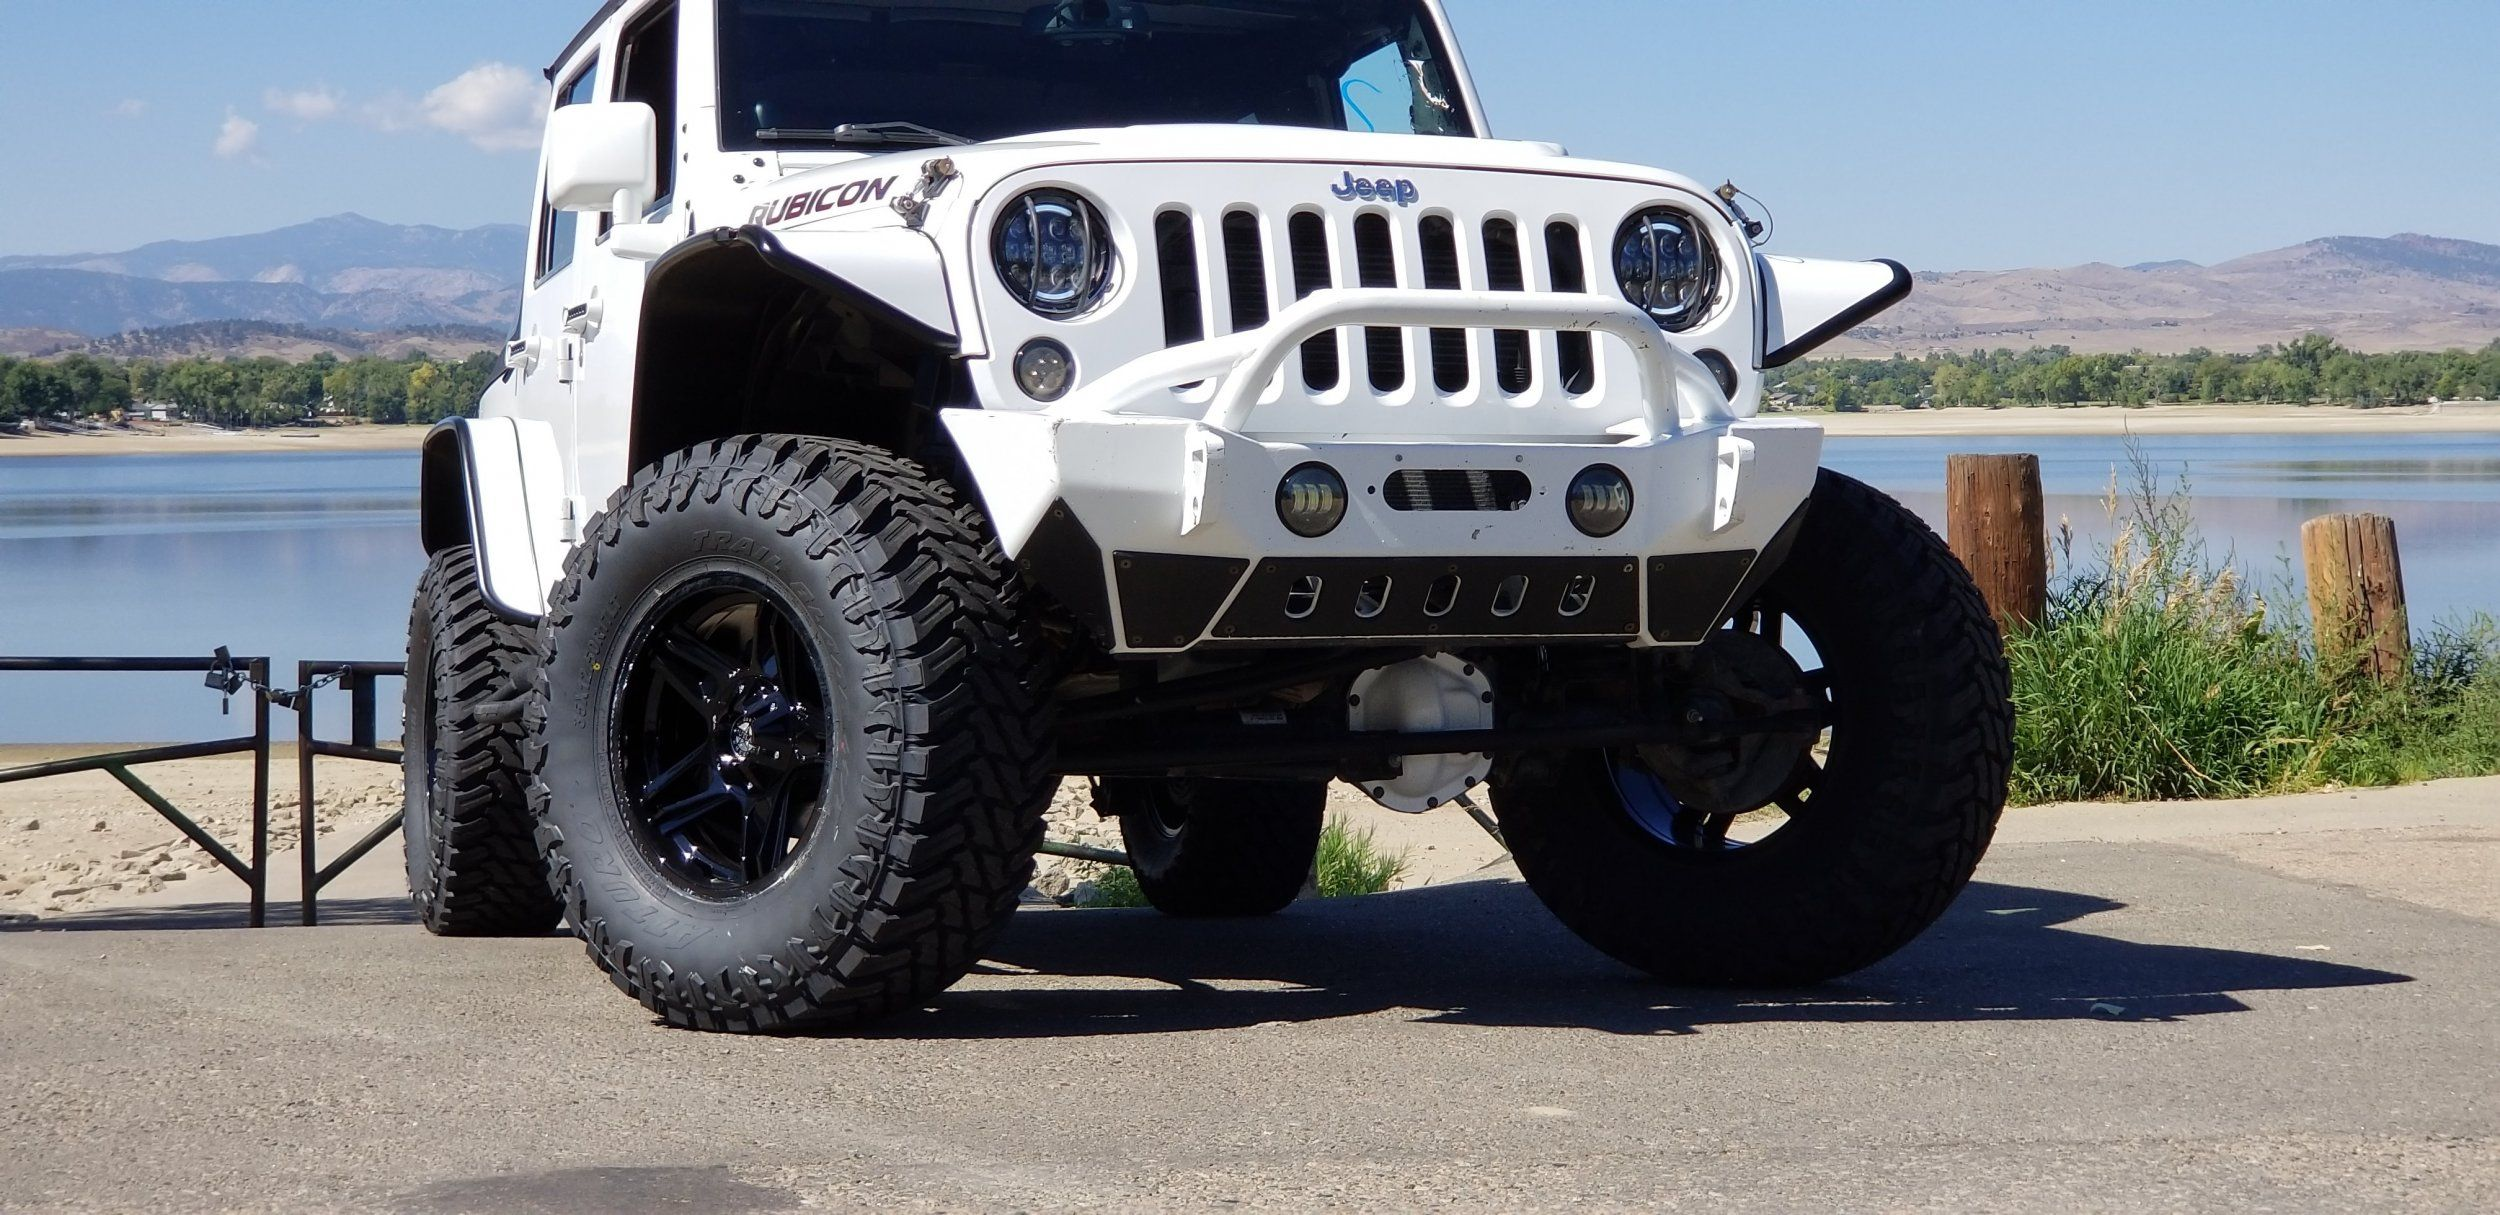 2013 Jeep Wrangler Unlimited Rubicon Auto Integrity White Sahara Lifted With Tire Carrier And Led Tail Lights New 35 Inch Tires Fox Shocks Red Diamond Cut Leather Seats Many More Upg